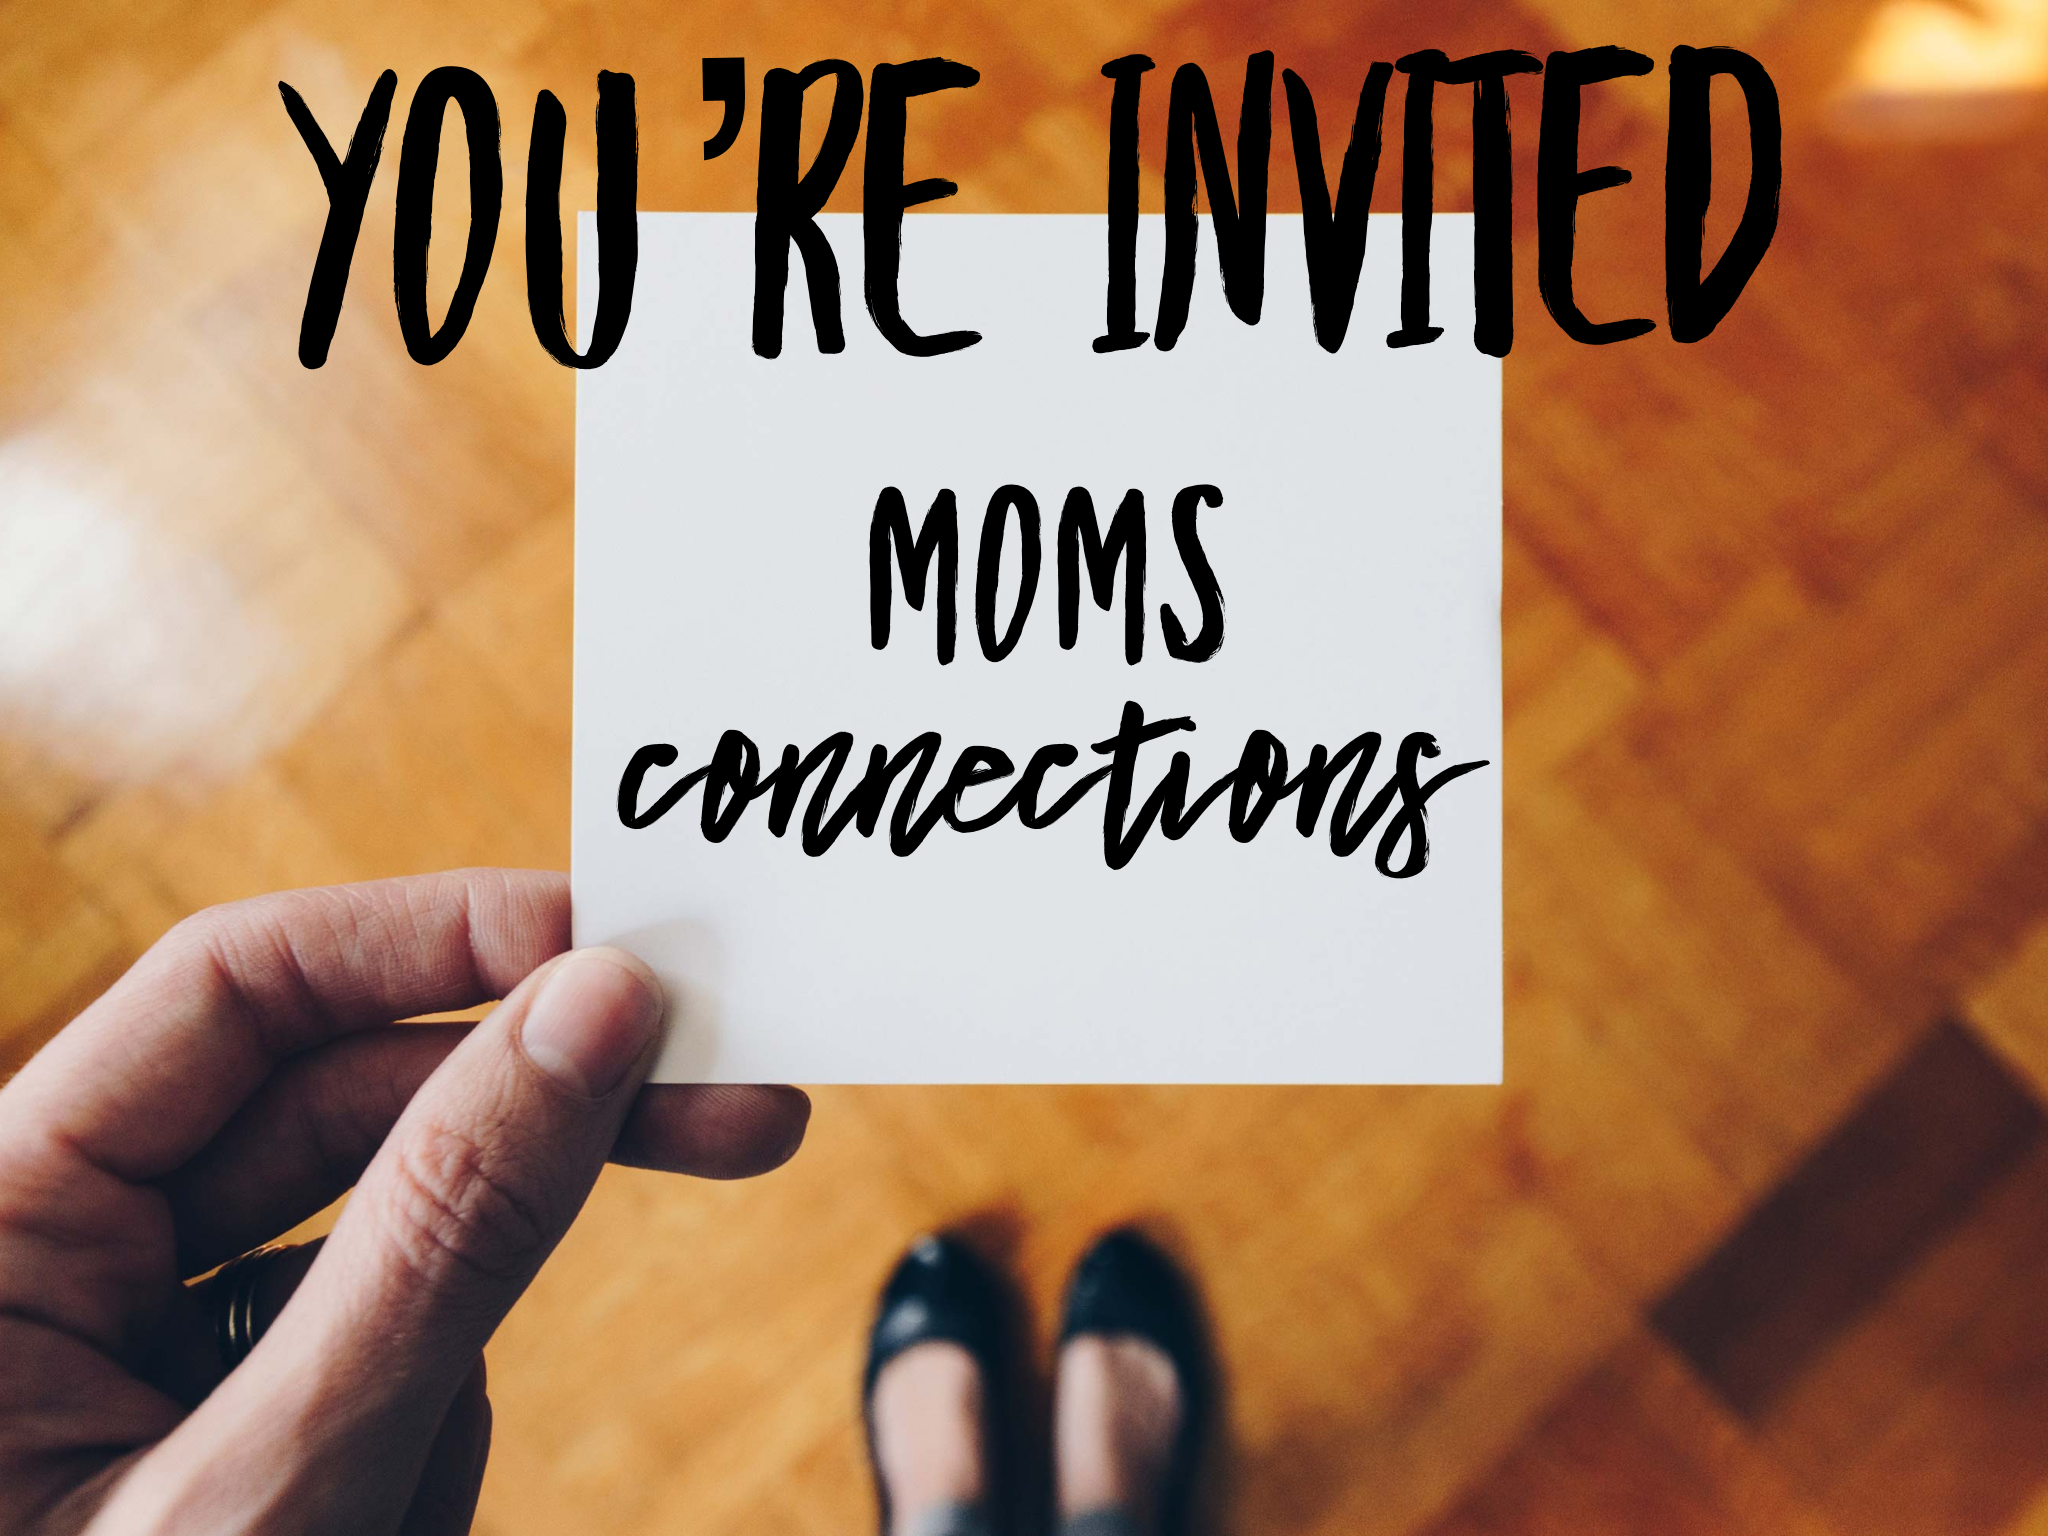 Check out These Ways for Moms and Kids to Connect!